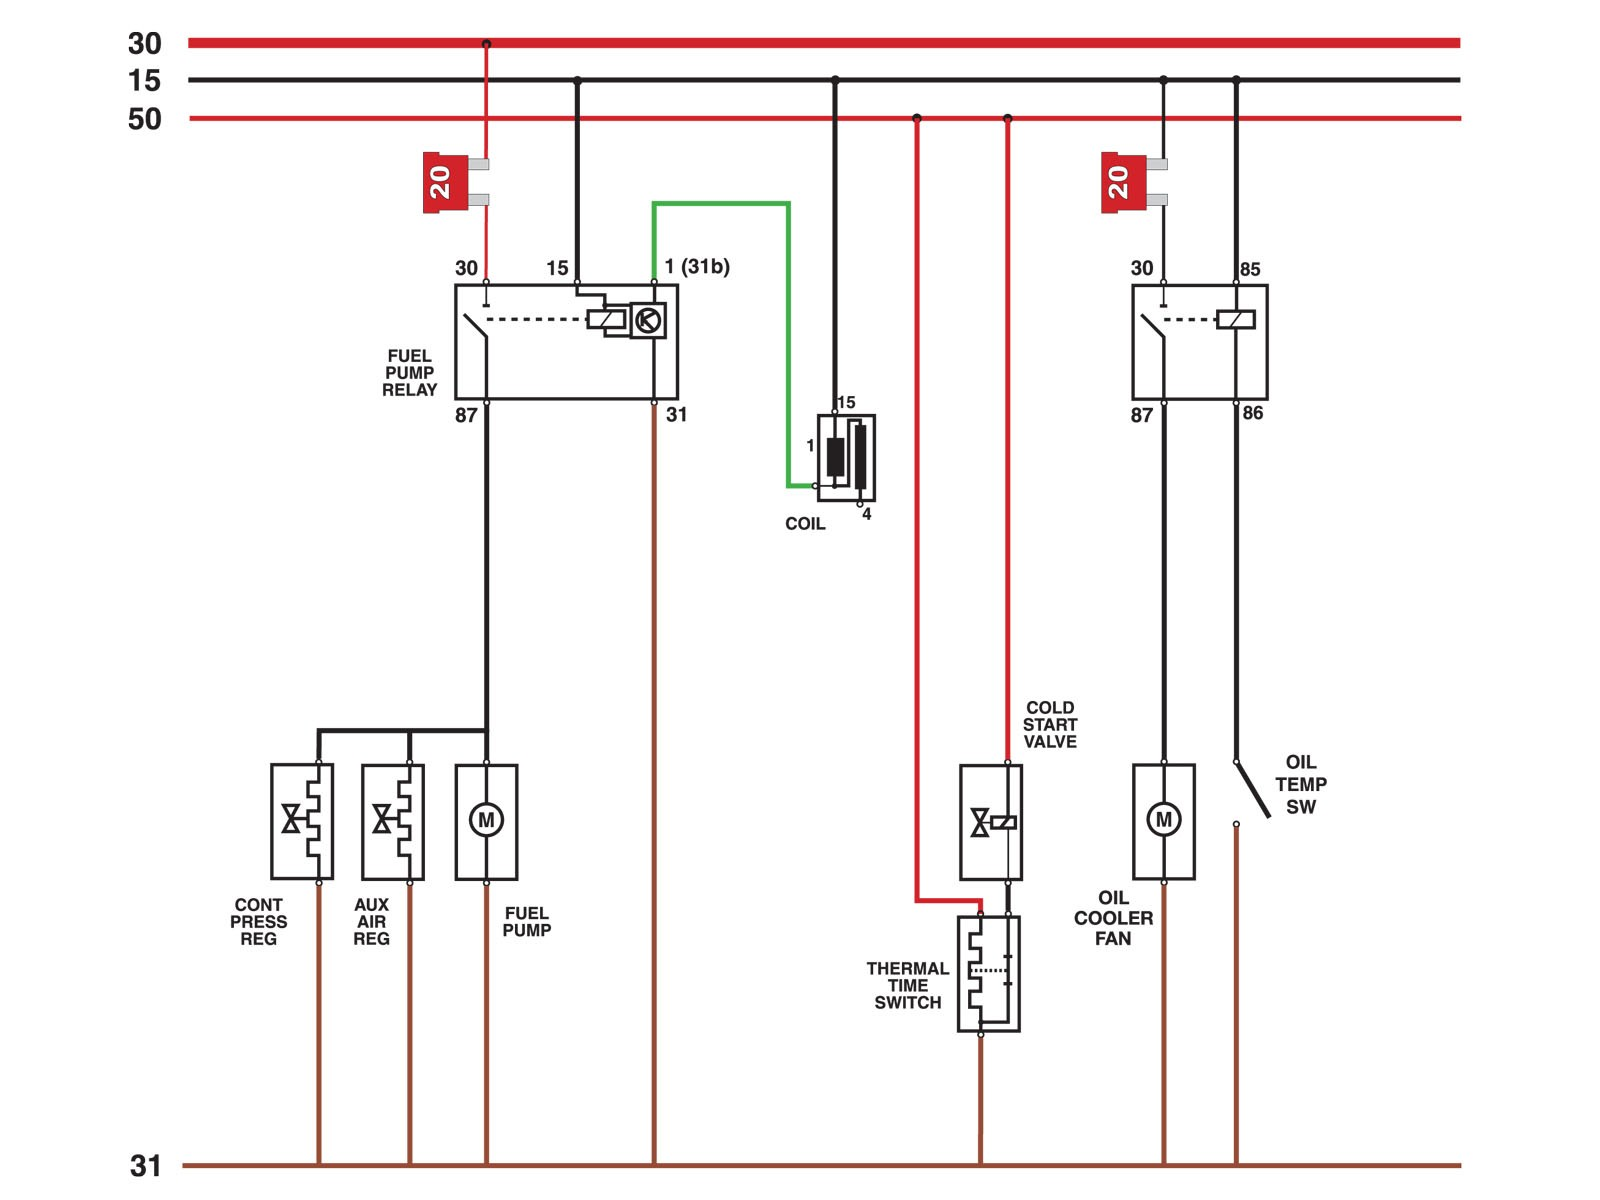 Wiring Diagram For An Electric Fuel Pump And Relay 98 Ls1 To 94 1996 Miata Selected Details Related Post